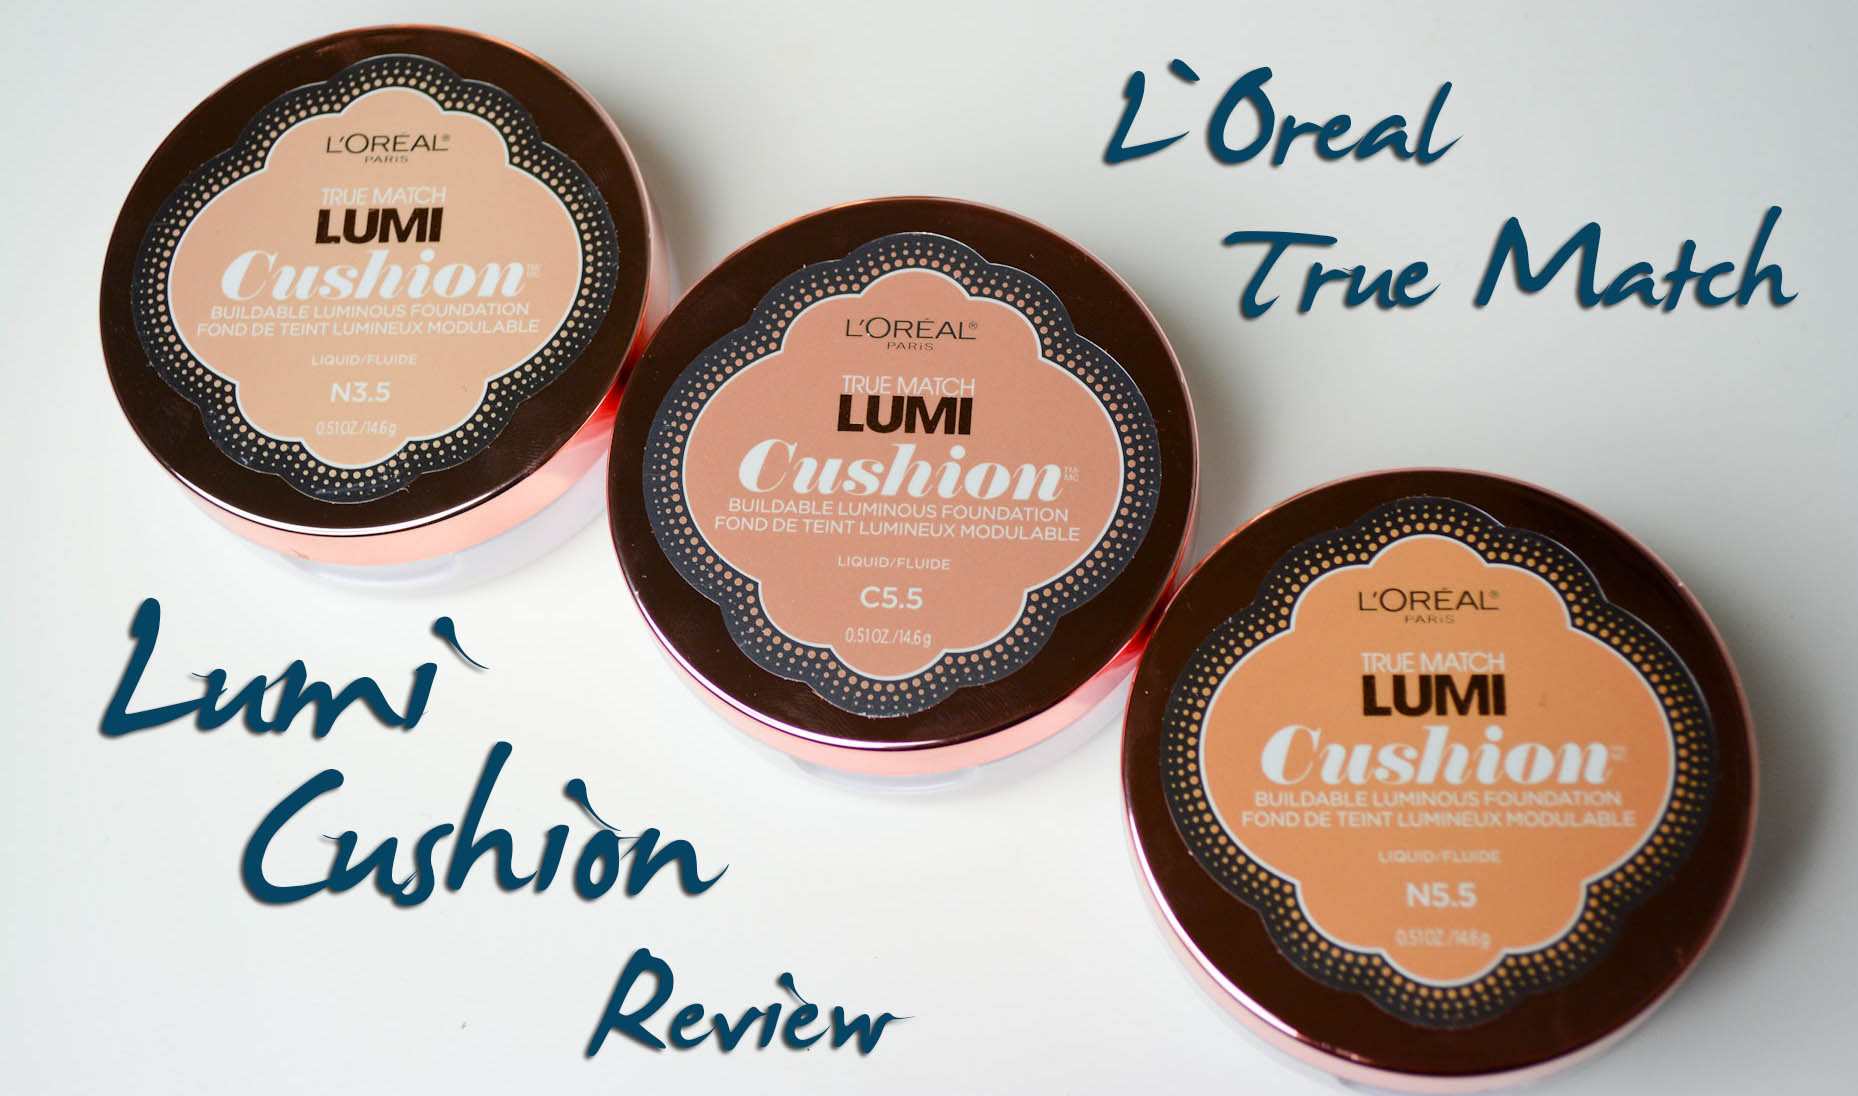 L'Oreal True Match Lumi Cushion Review